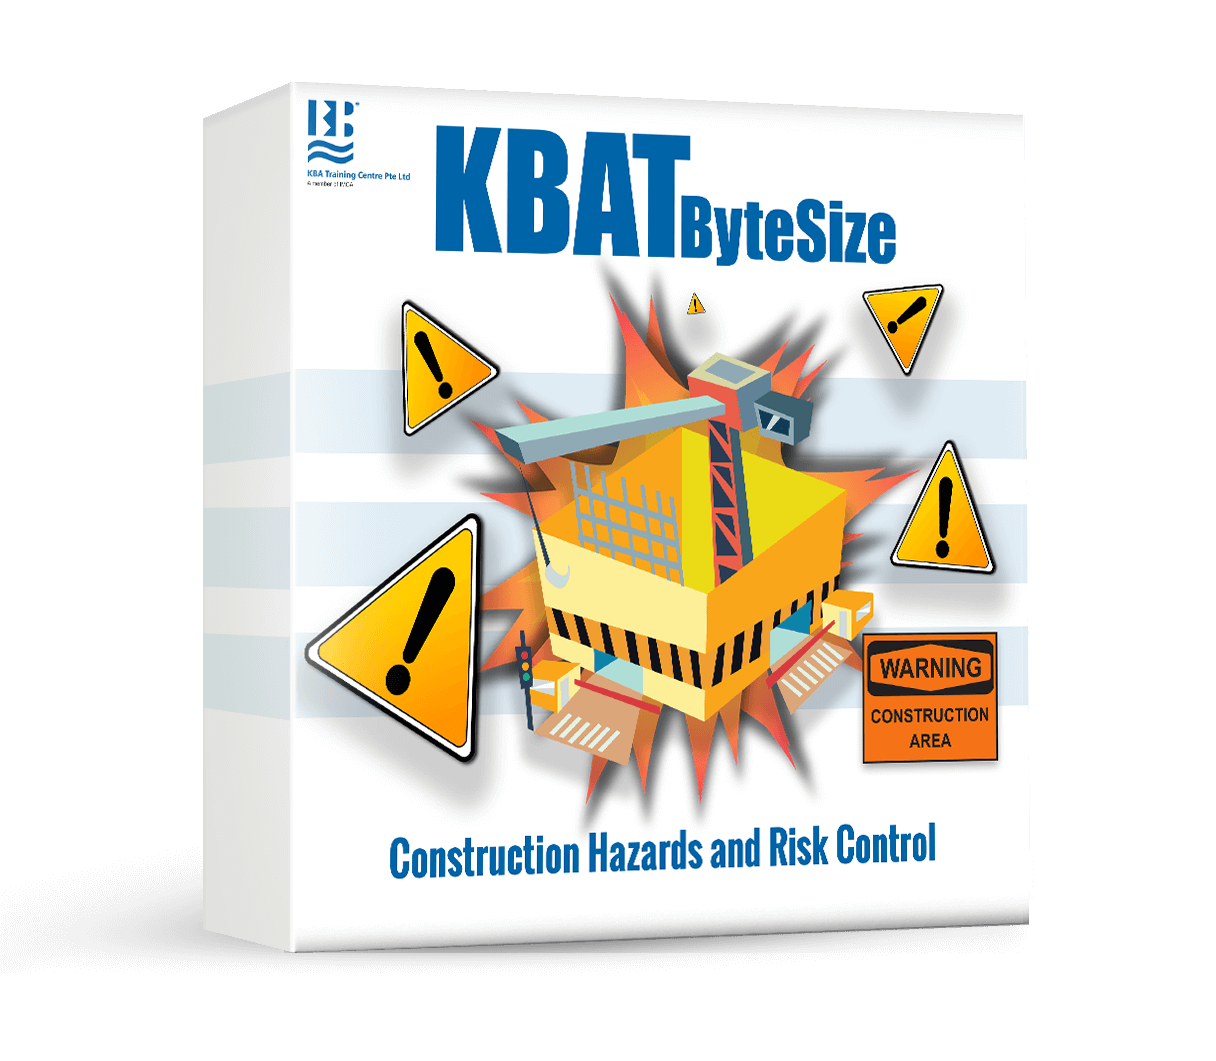 Construction Hazards and Risk Control